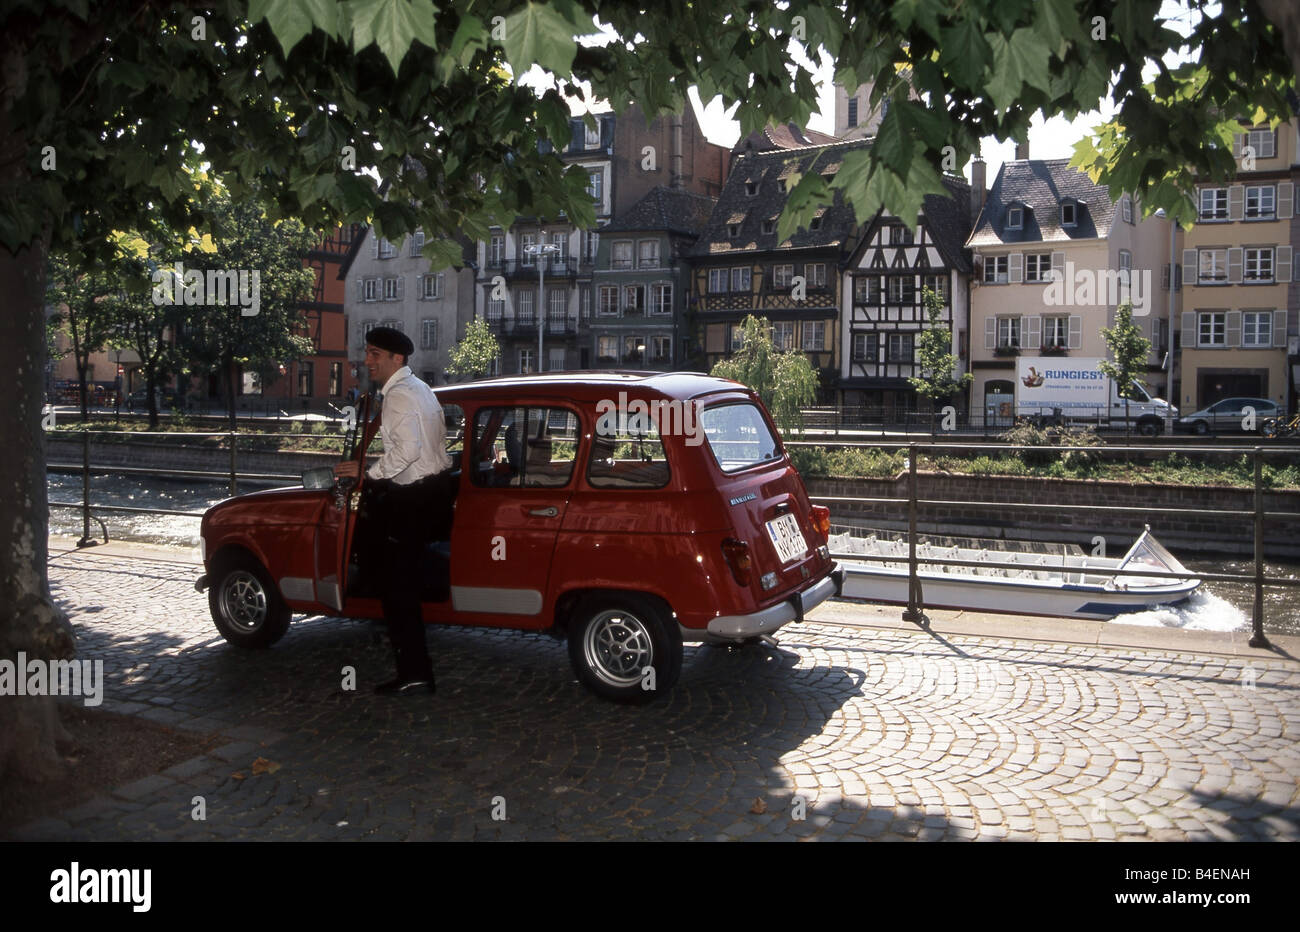 Car, Renault 4, old car, red, standing, side view, city, 'mit Franzose', photographer: Hans Dieter Seufert - Stock Image